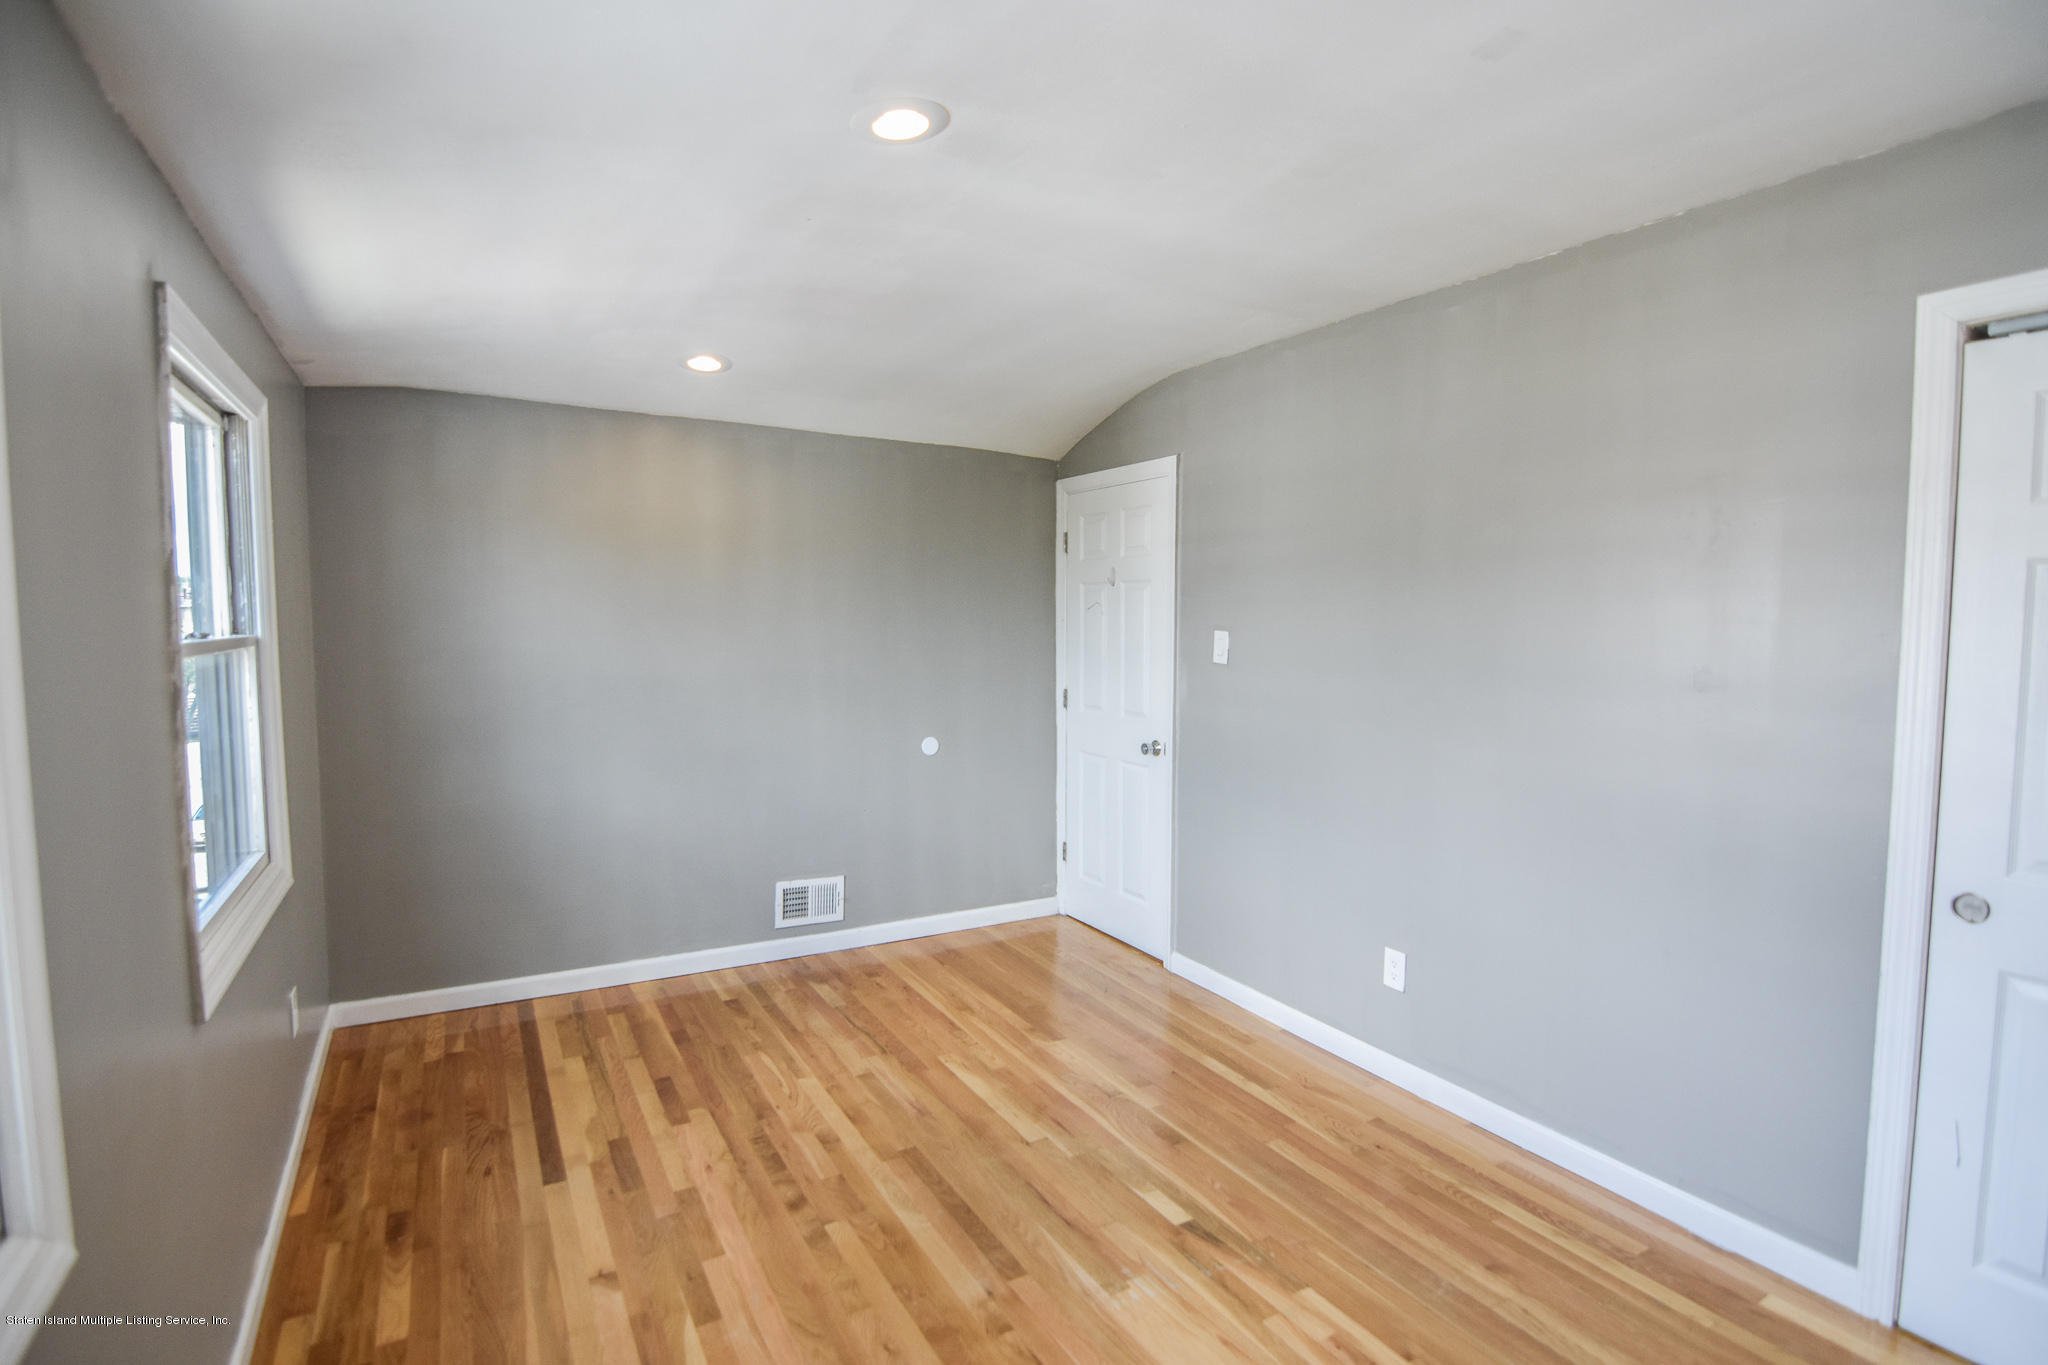 Single Family - Semi-Attached 12 Ebey Lane  Staten Island, NY 10312, MLS-1131132-17